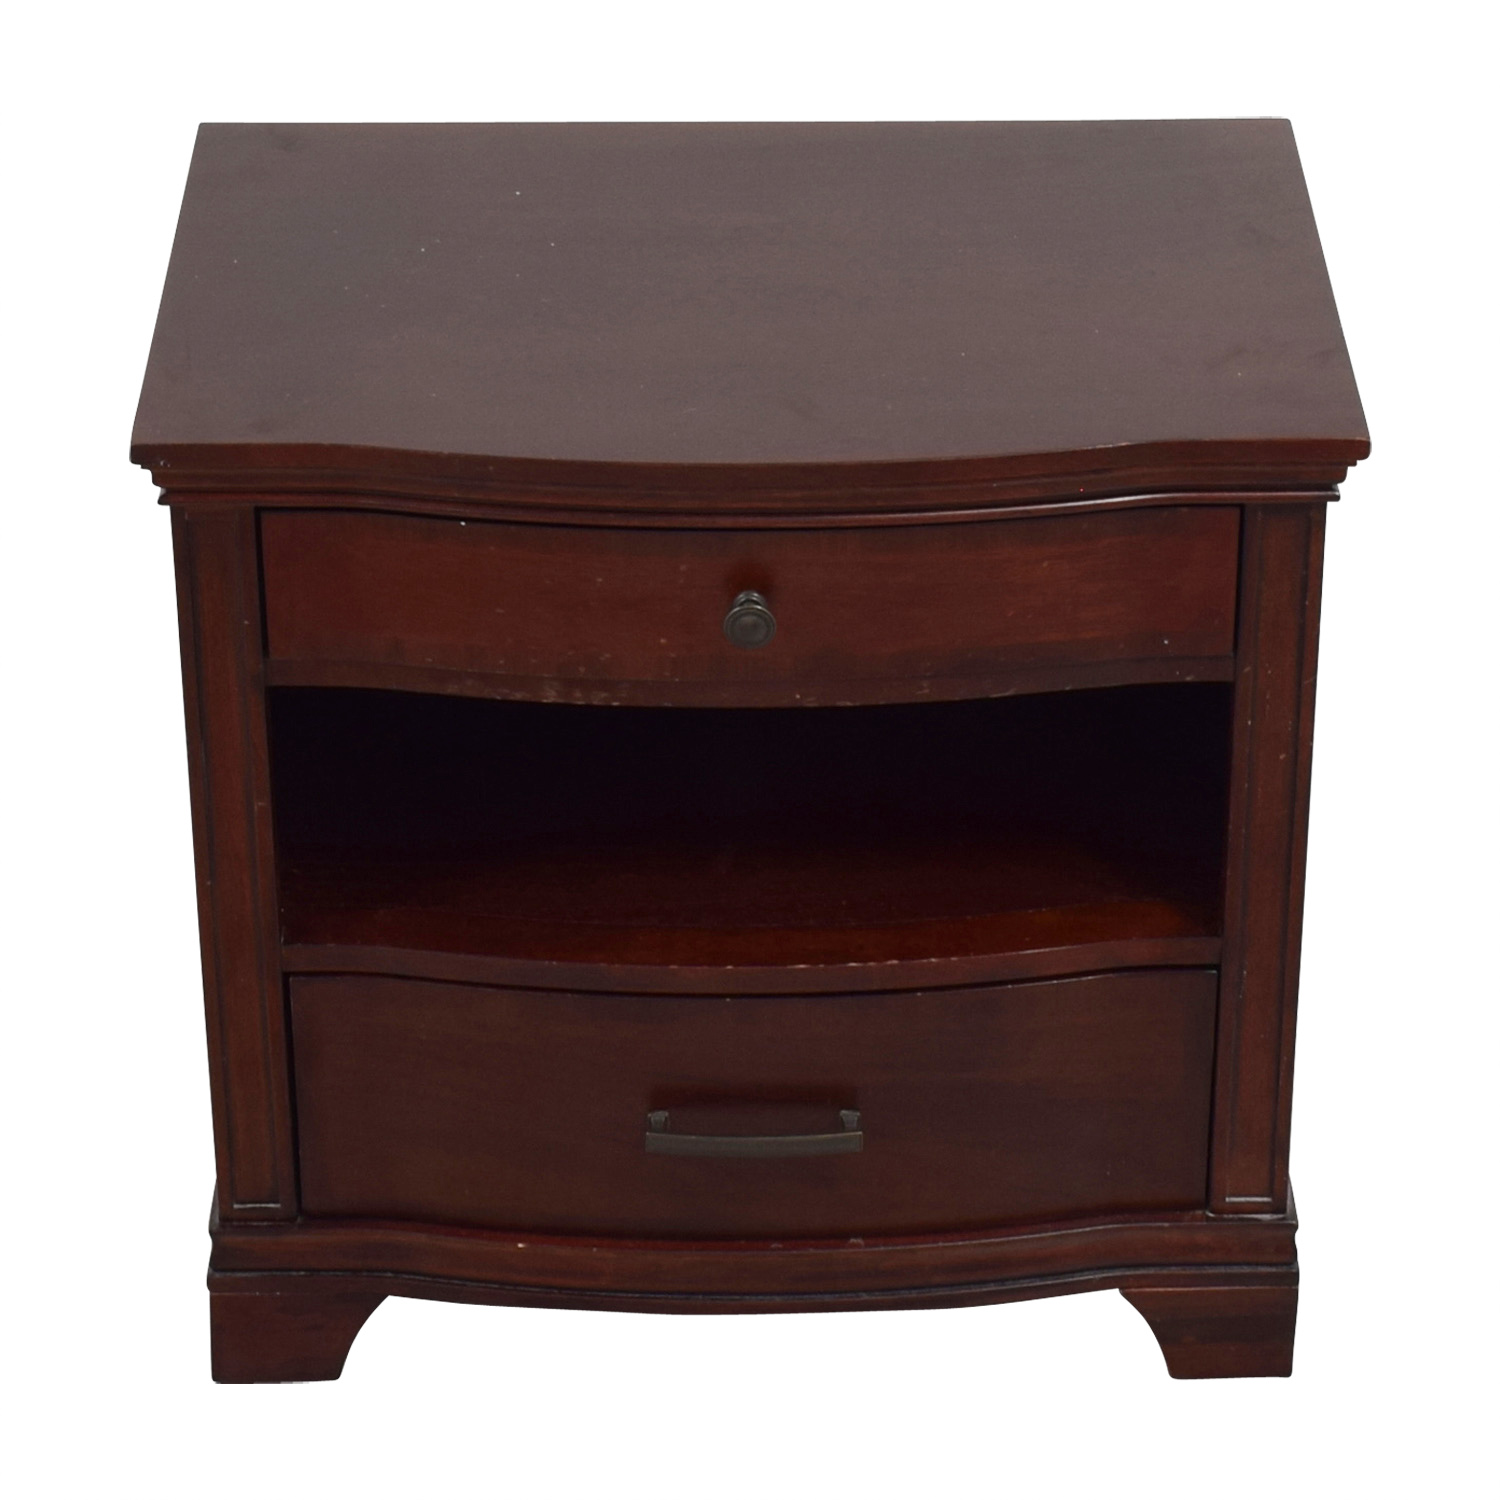 Universal Furniture Universal Furniture Two-Drawer Wood Nightstand discount